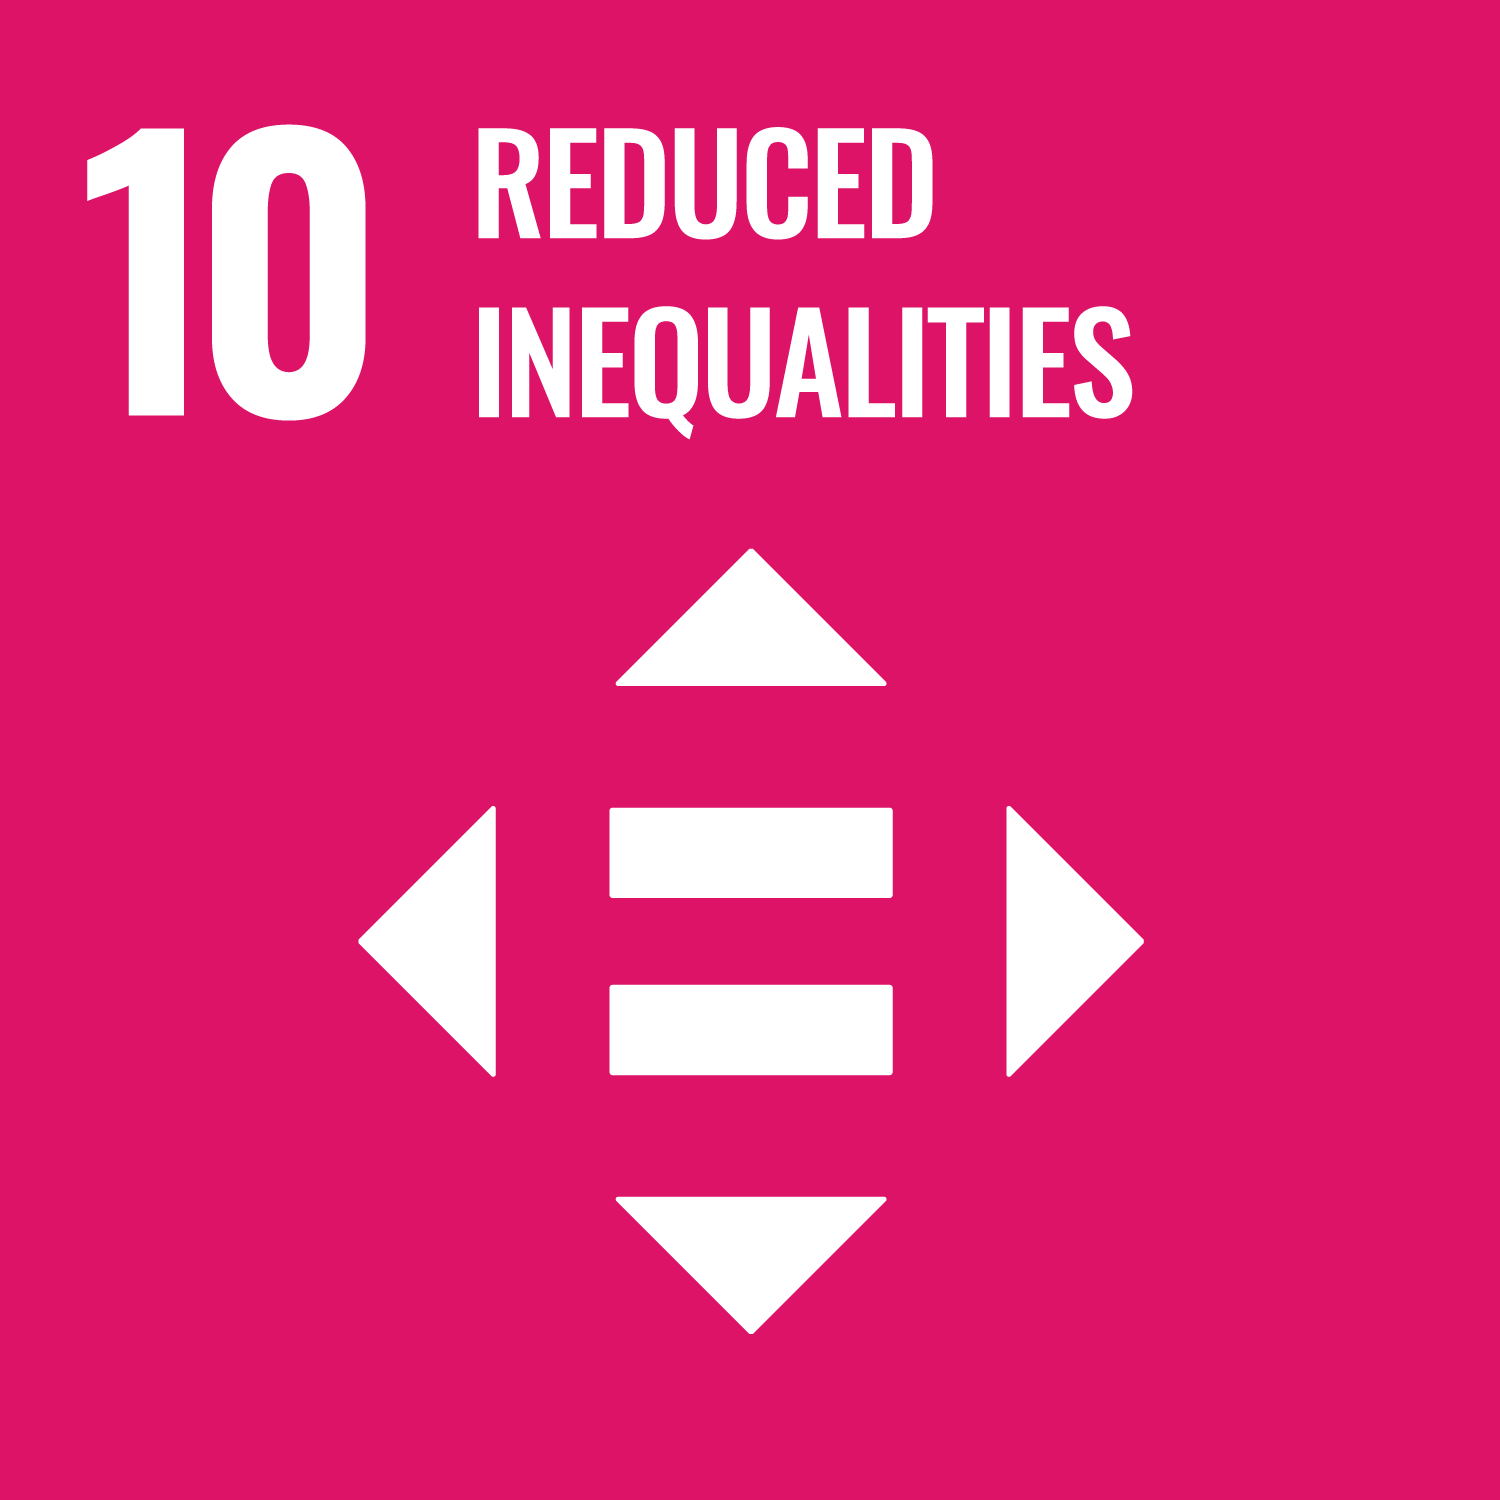 Sustainable Development Goals – Reduced Inequalities